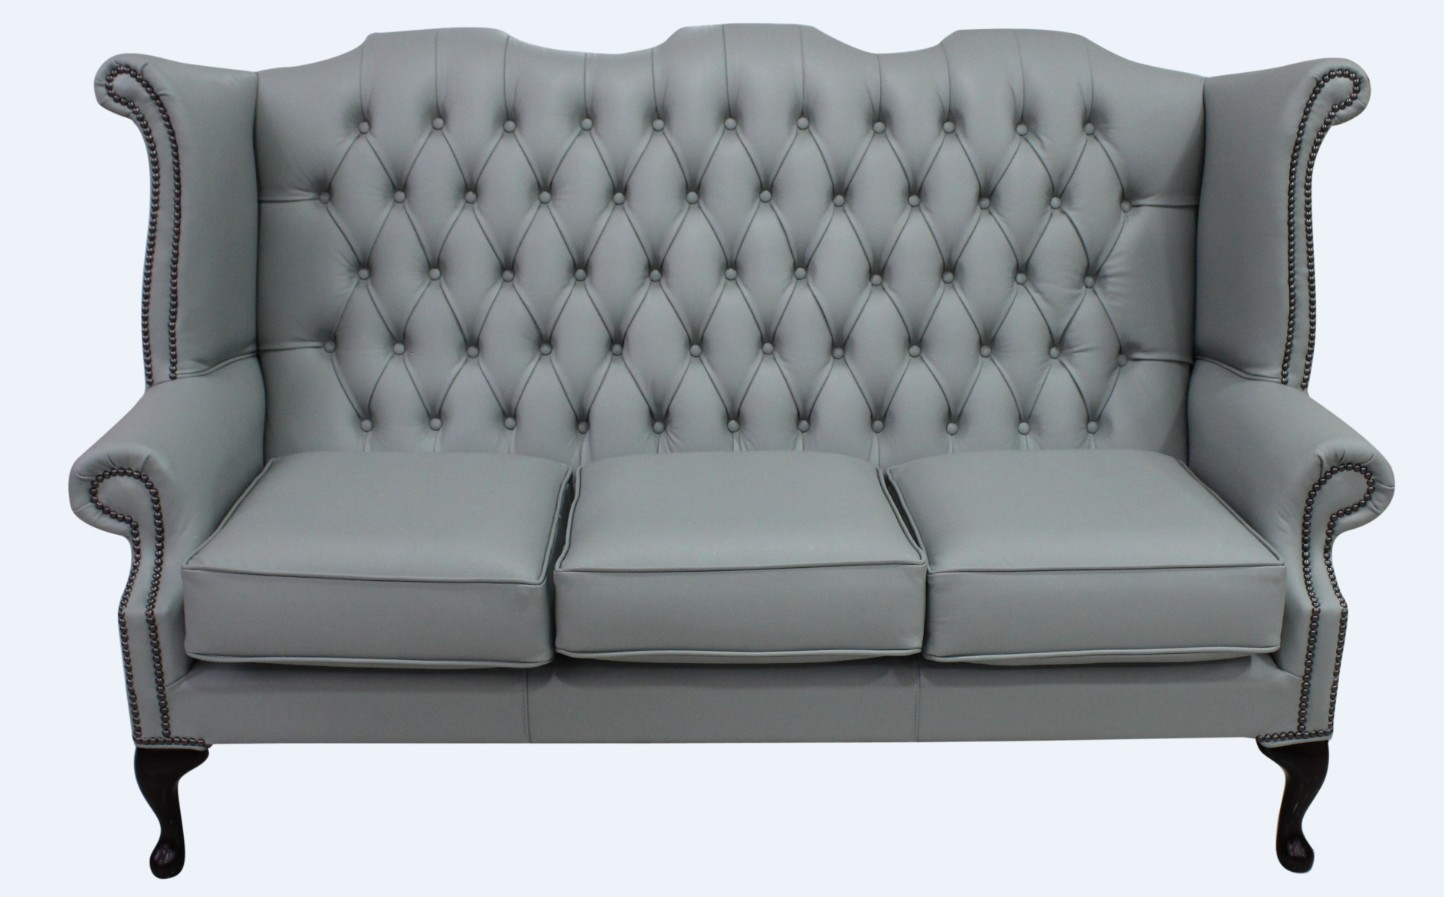 Chesterfield 3 Seater Queen Anne High Back Wing Sofa Moon Mist Grey Leather